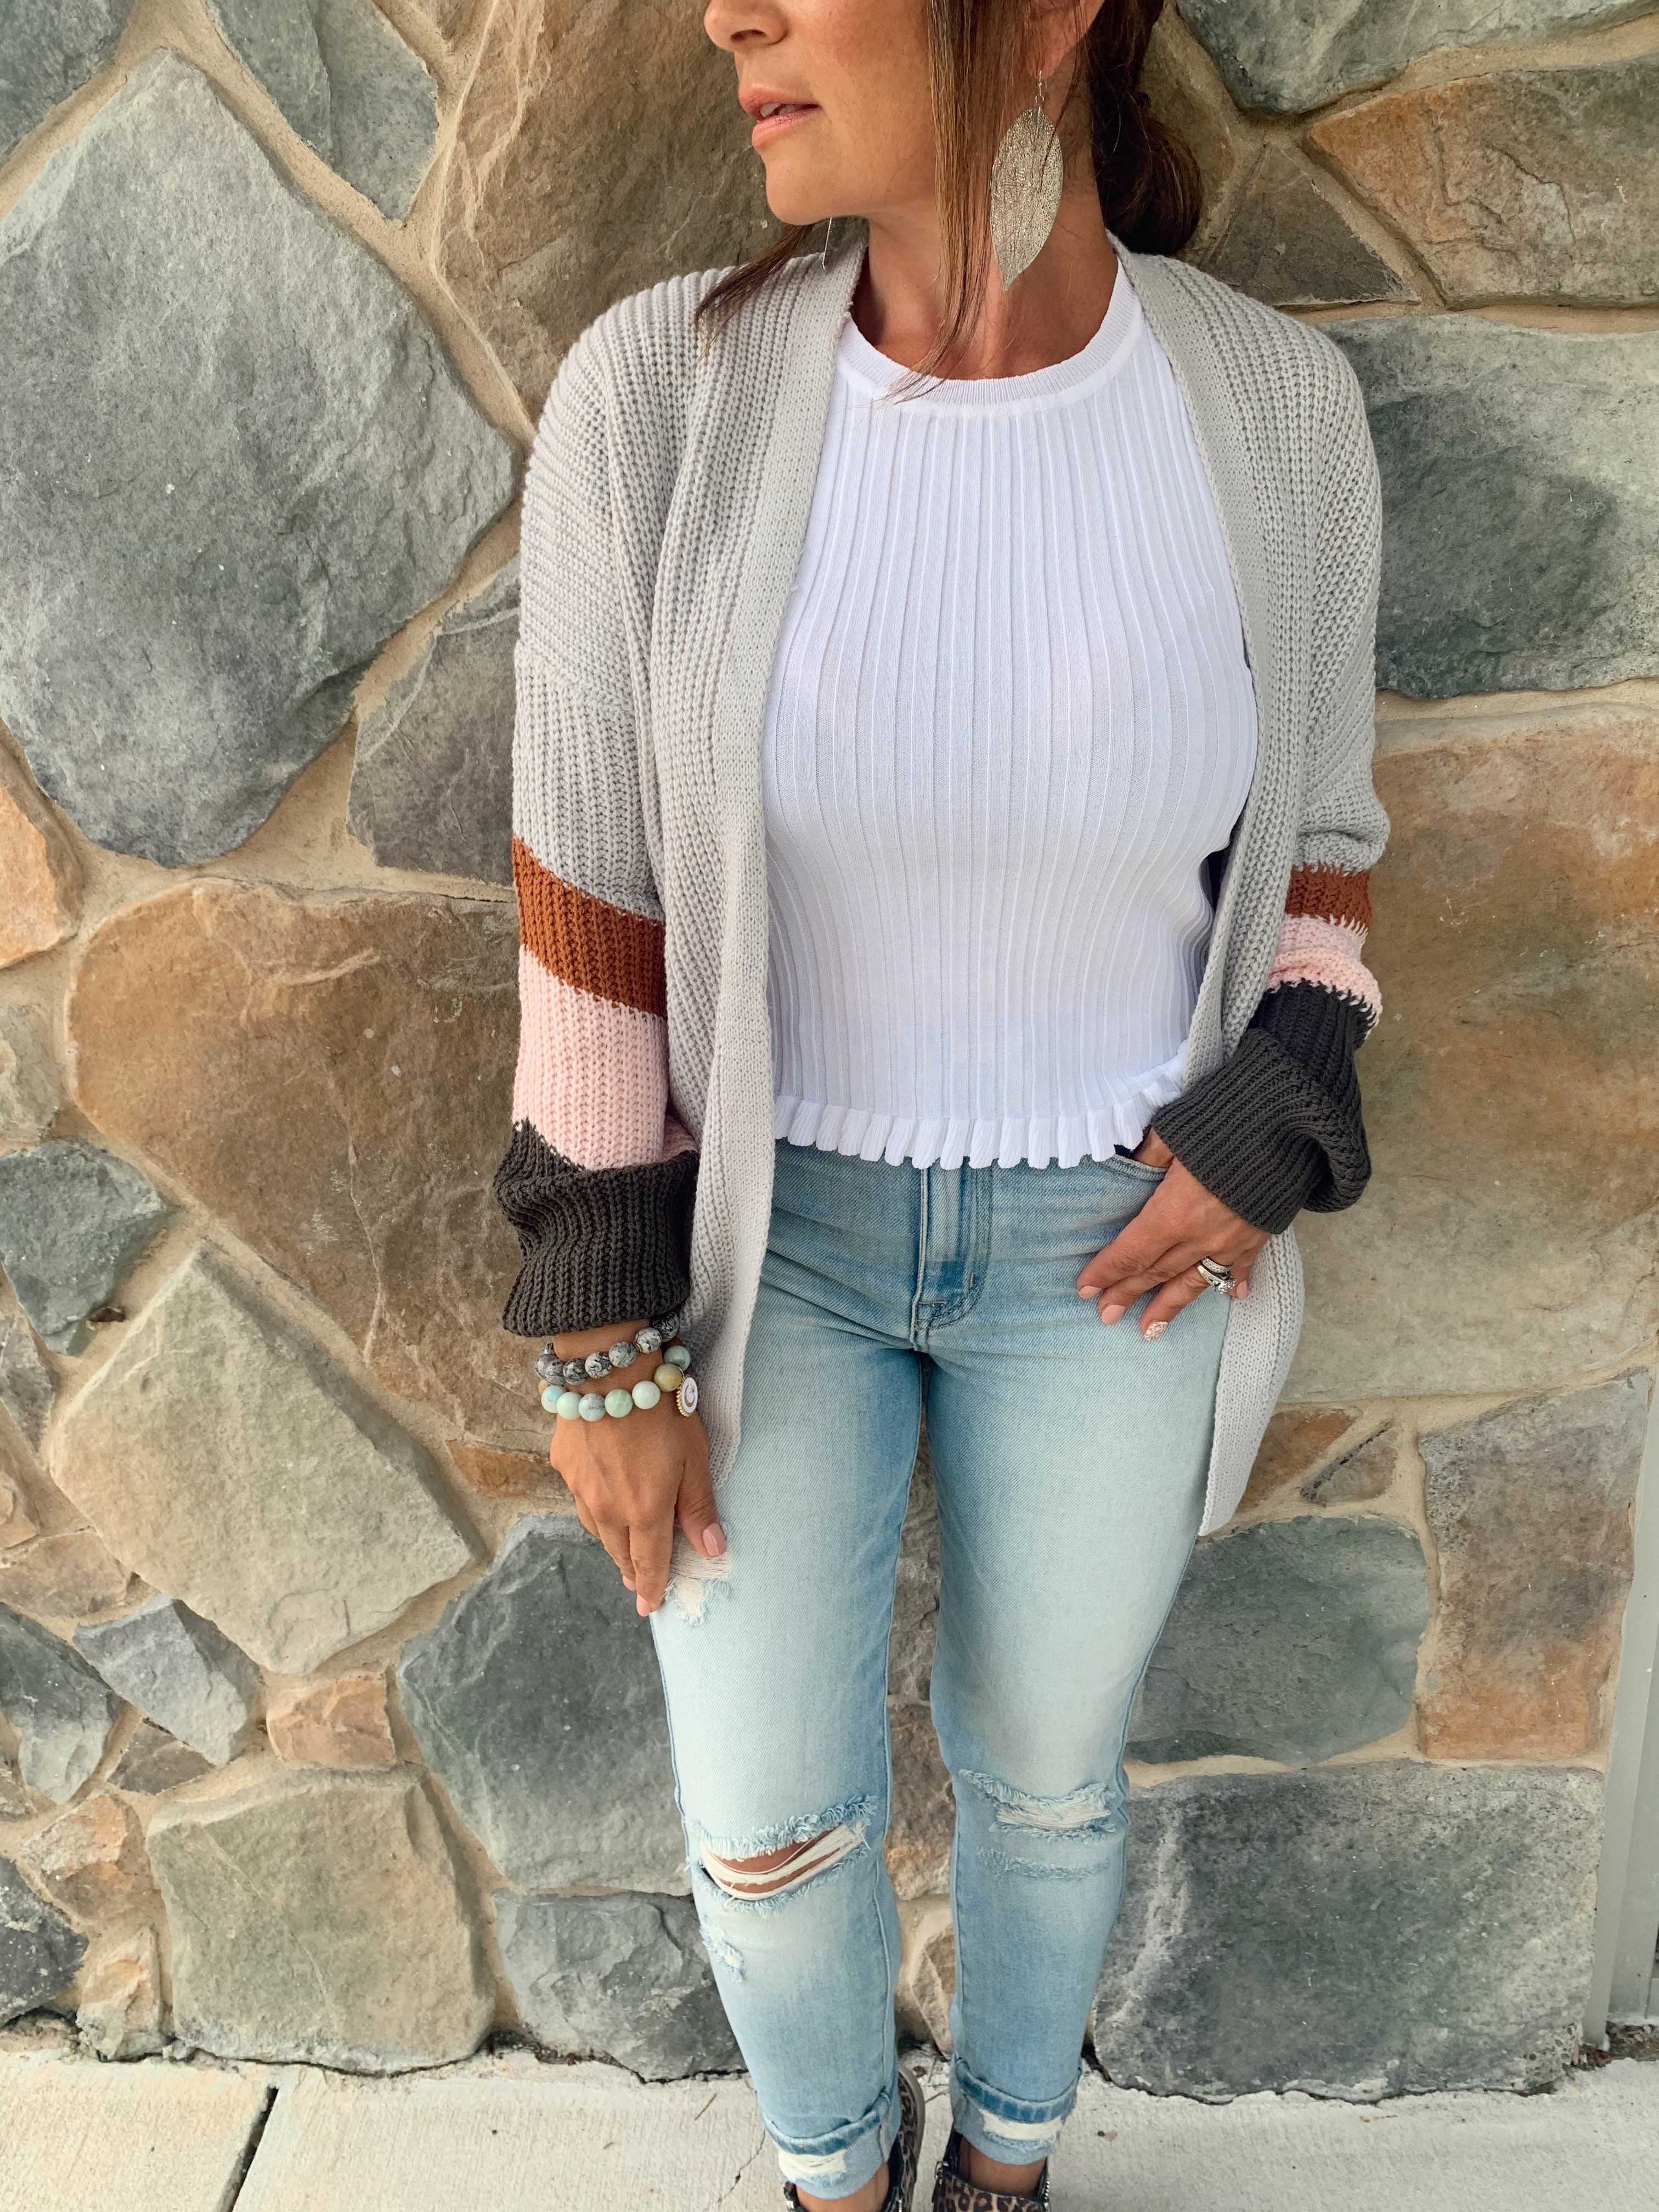 Caren Cardigan What's fall without cardigans? This cozy cardigan is a perfect addition to your closet- the pop of color make it stand out from your typical sweaters. The belt helps give this one piece a few different looks! Size & Fit Our model Gina is 4'11